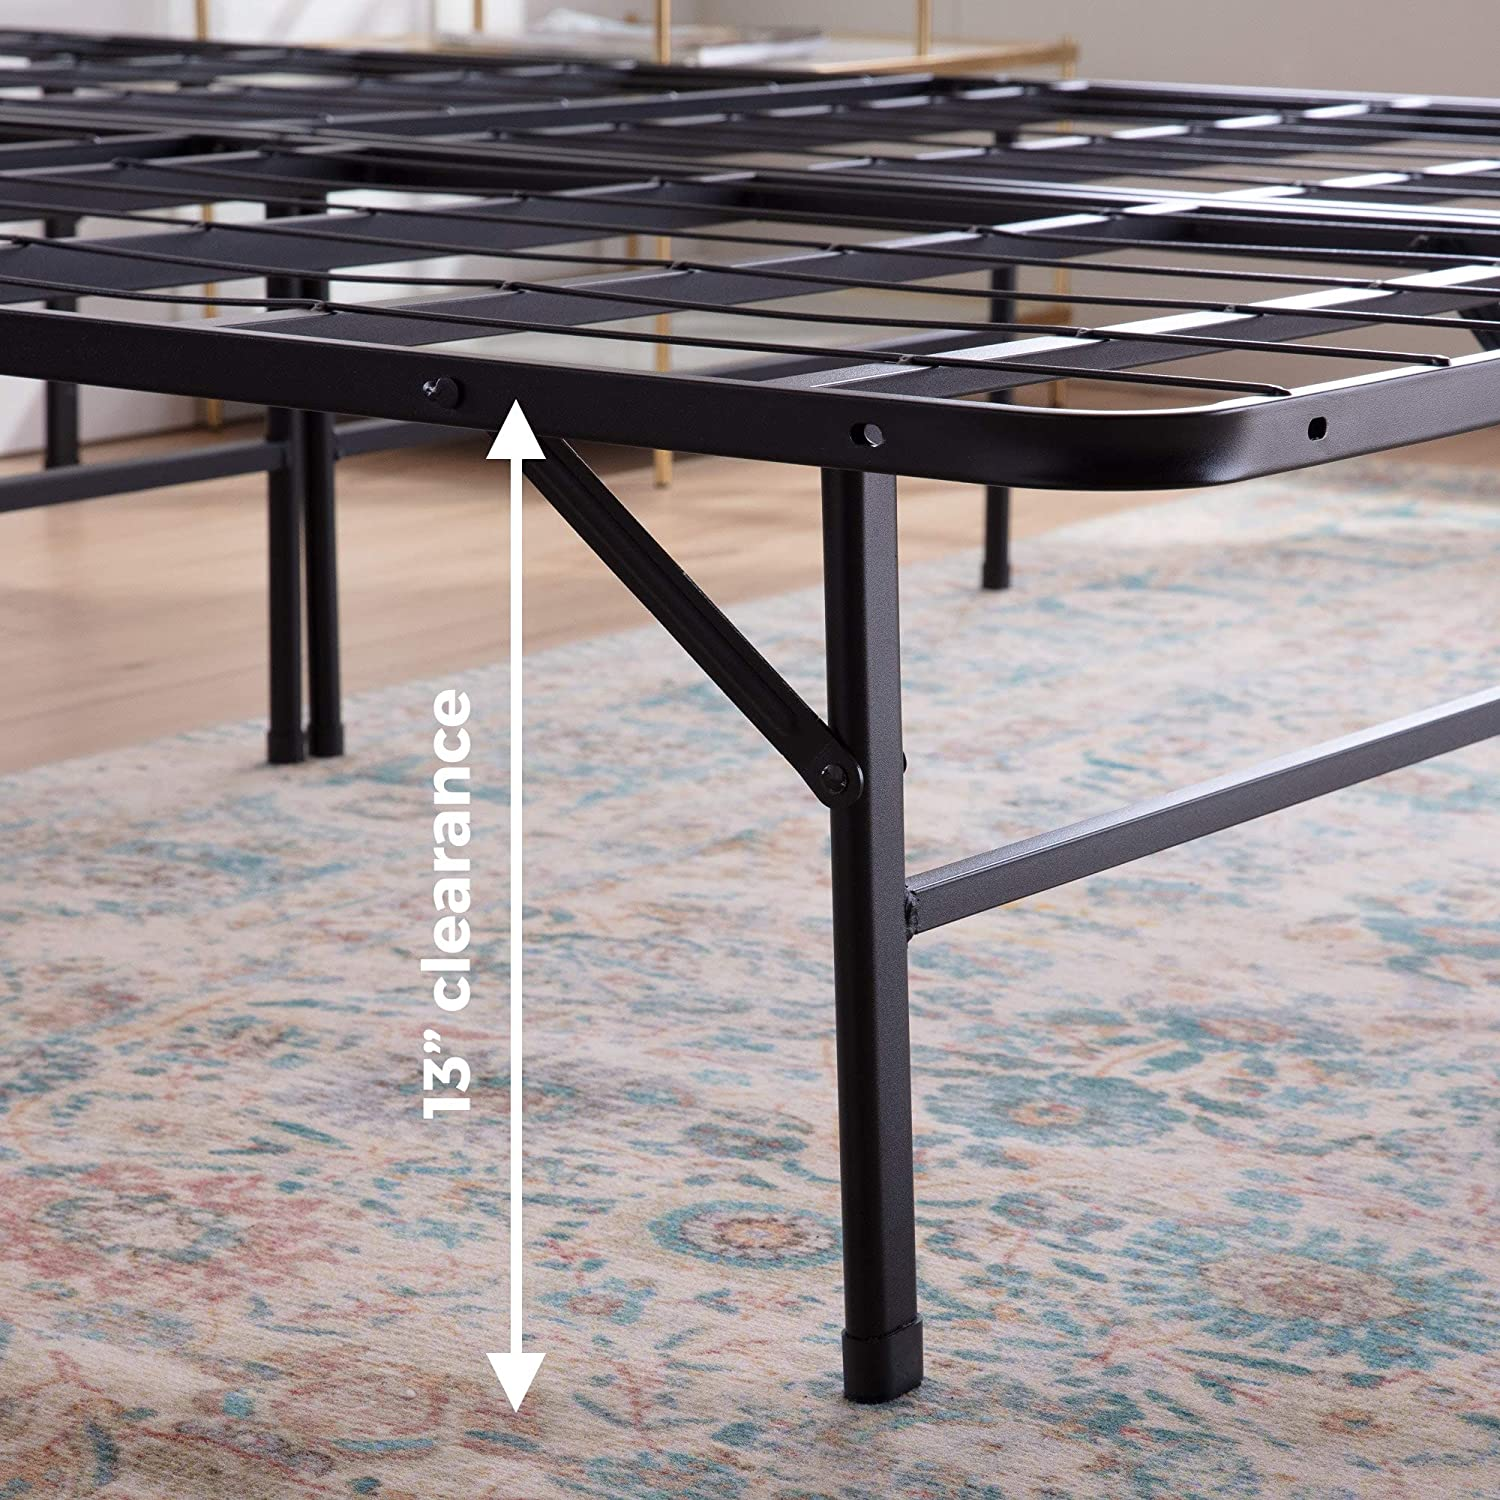 LINENSPA/14 Inch Folding/Metal/Platform Bed Frame Heavy Duty Construction 5 Minute Assembly/- Full 13 Inches Tons of Under Bed Storage